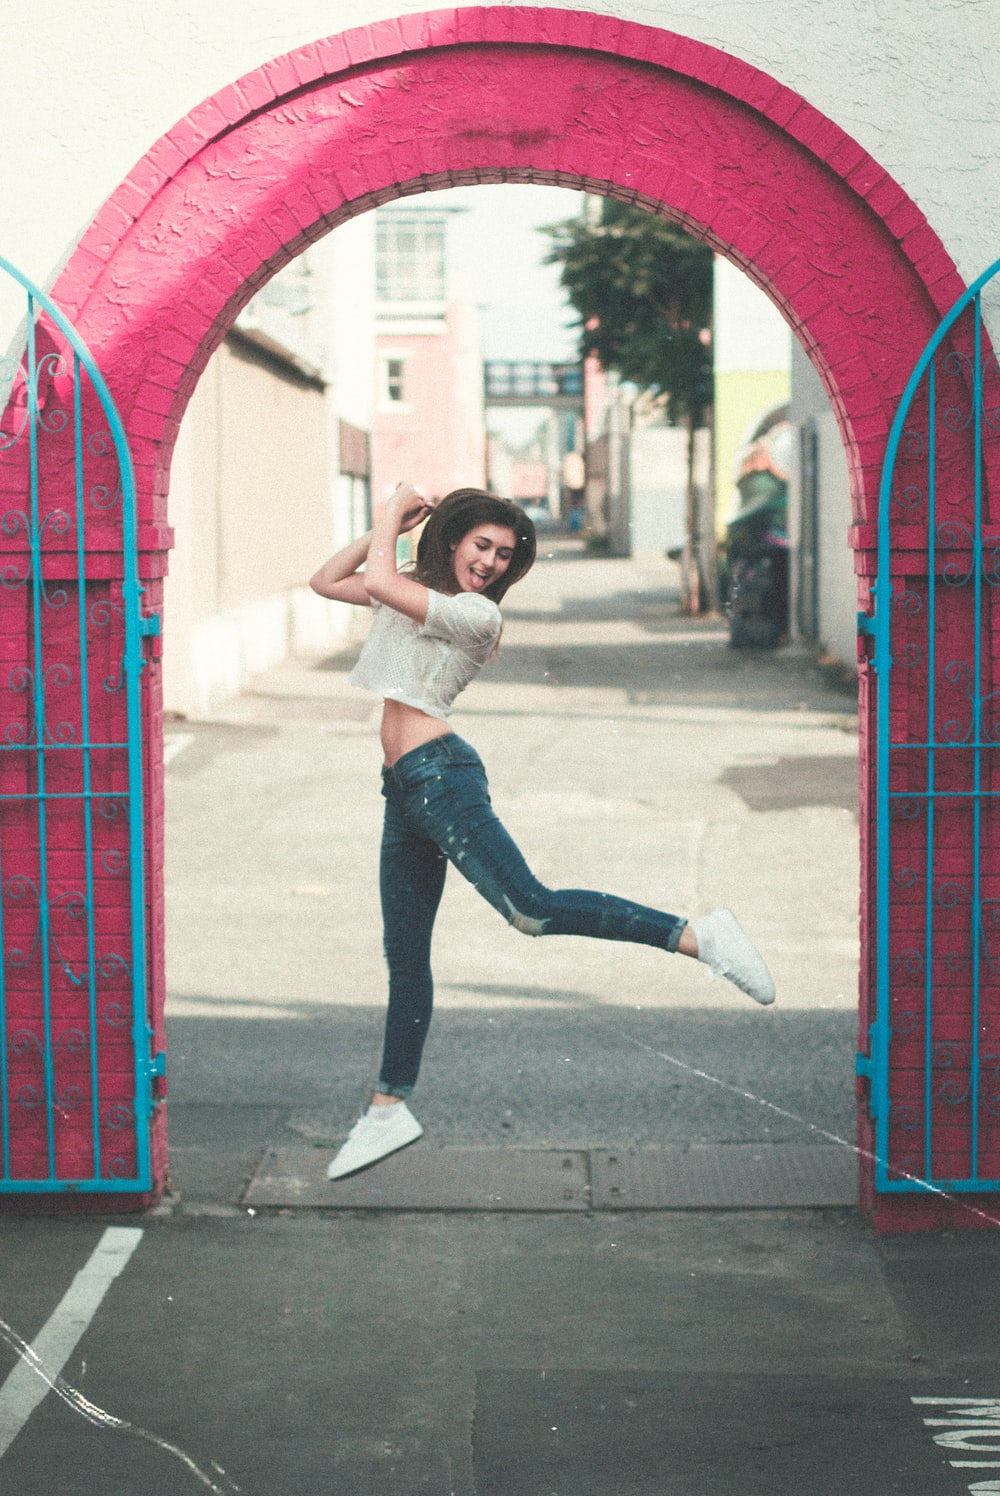 woman jumping near gate